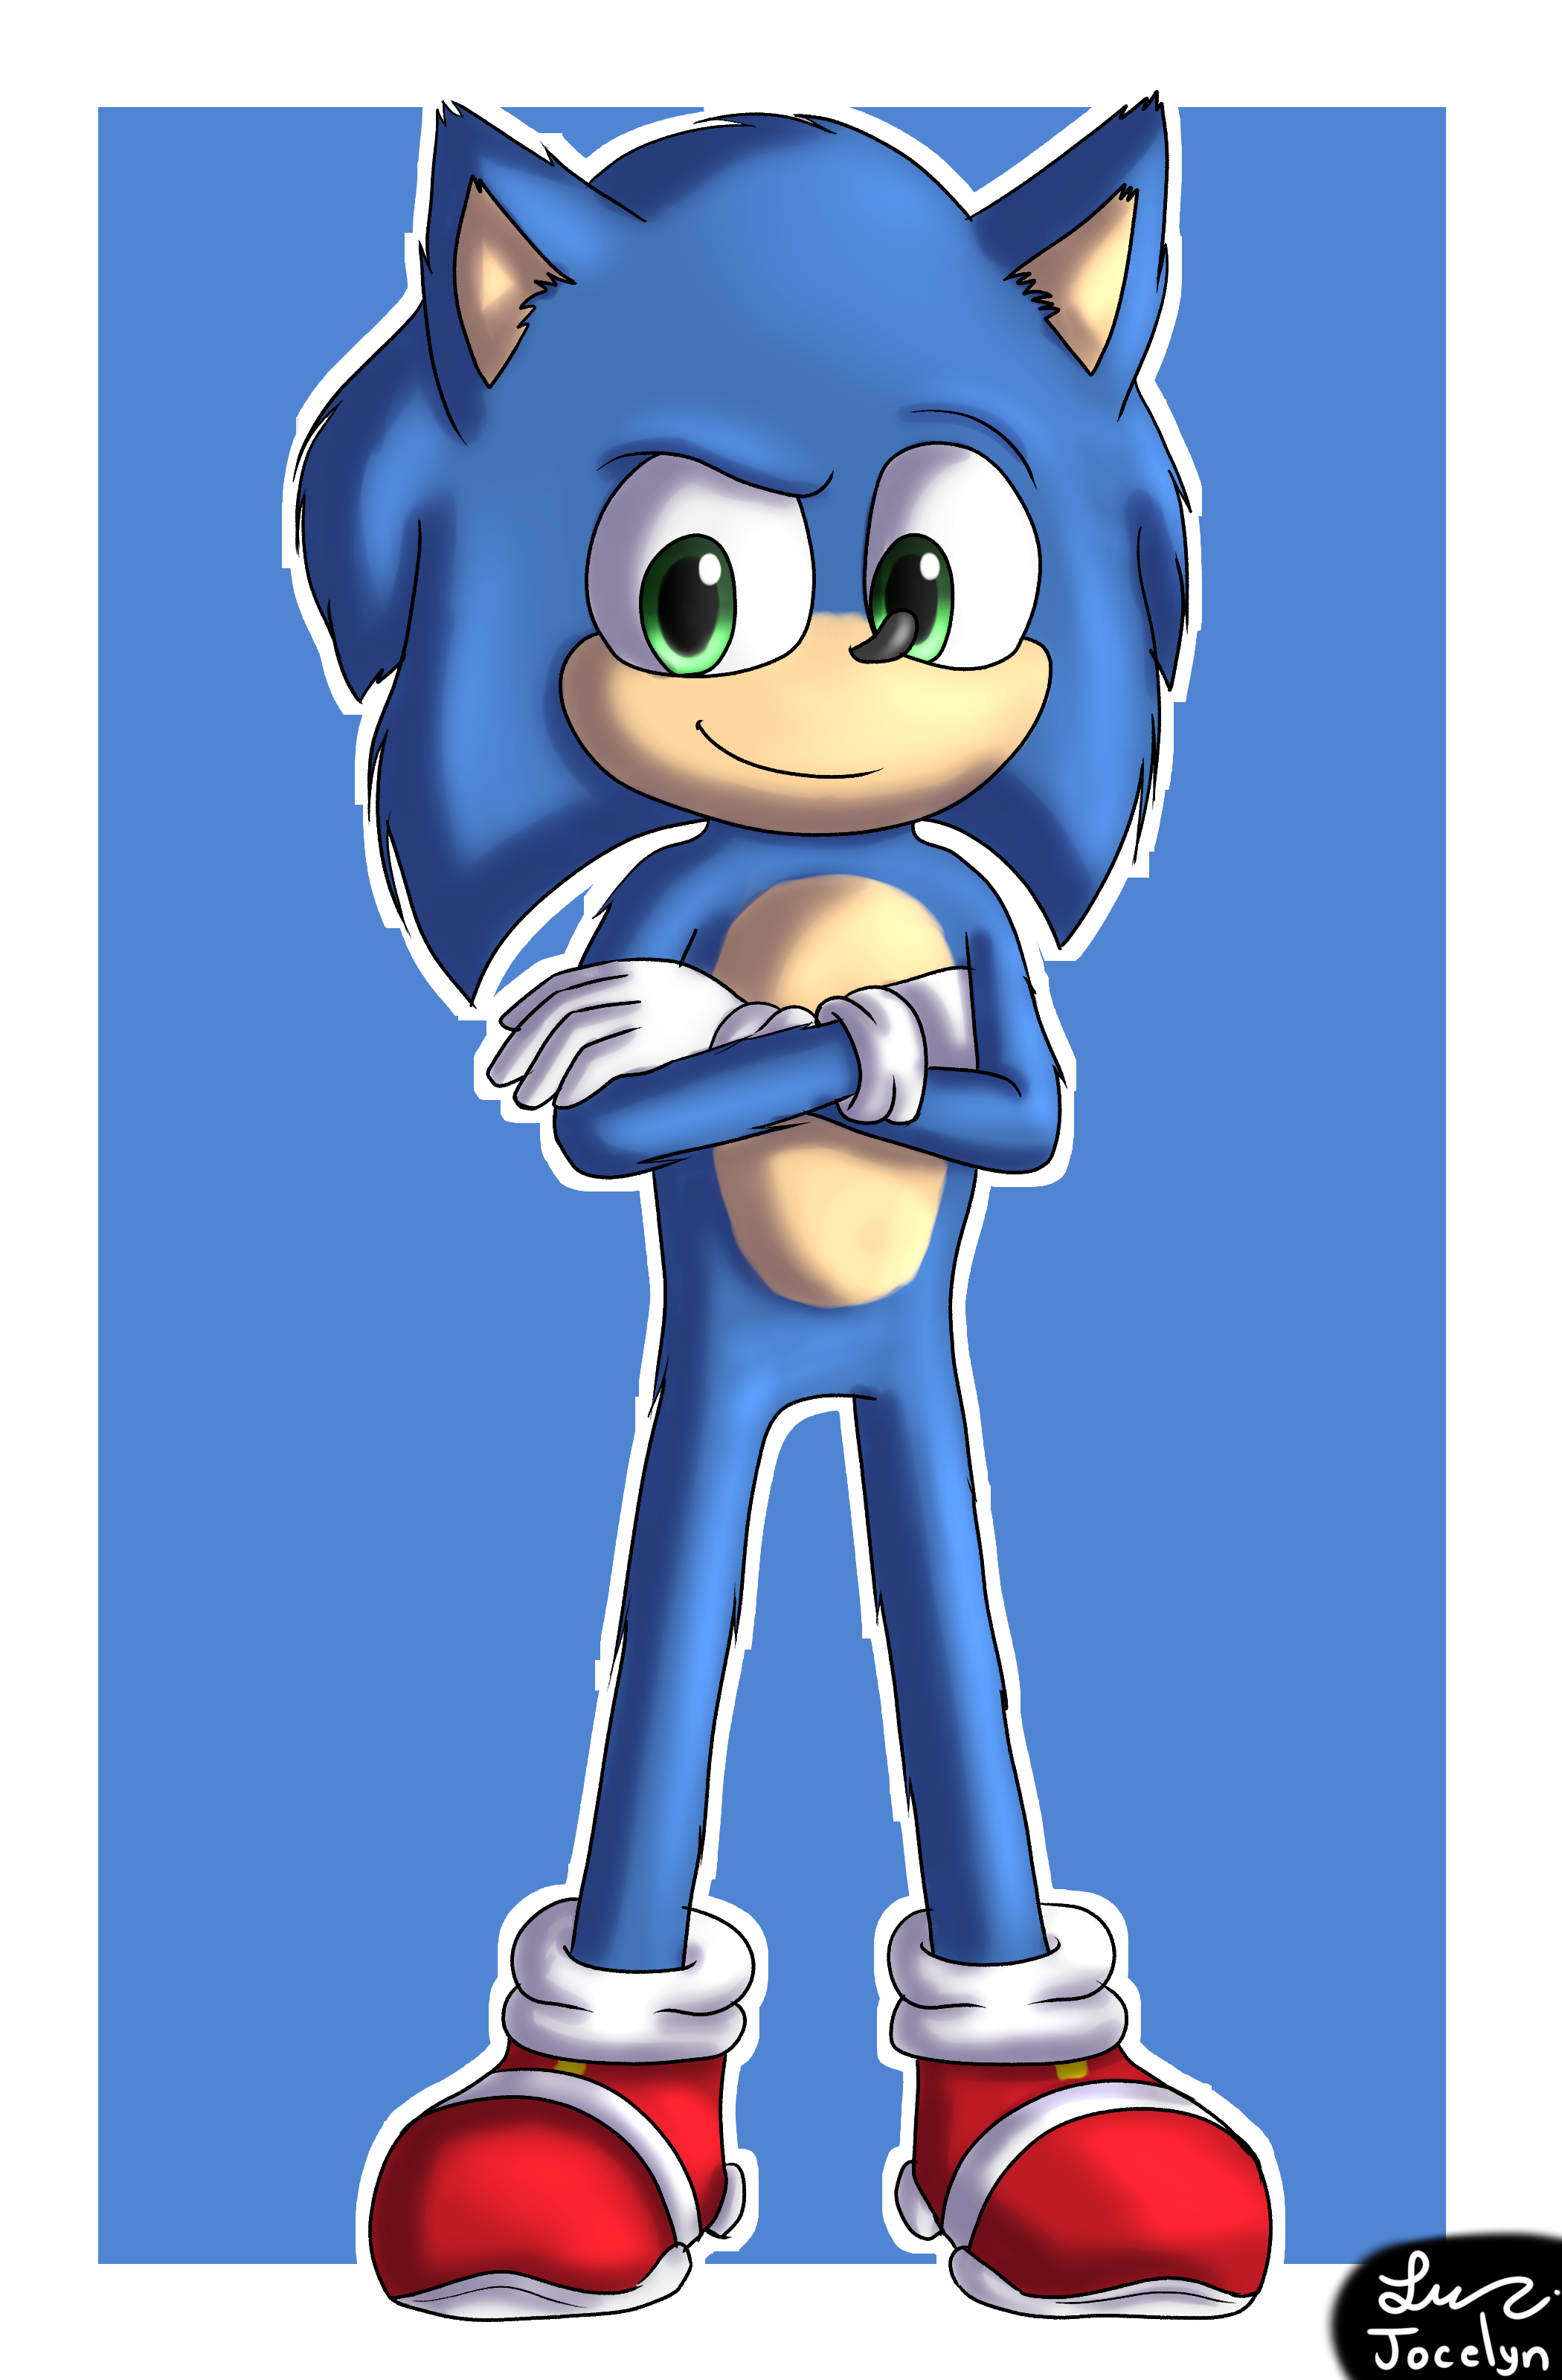 Sonic La Pelicula Sonic The Hedgehog Movie 2020 By Jocelynminions On Deviantart